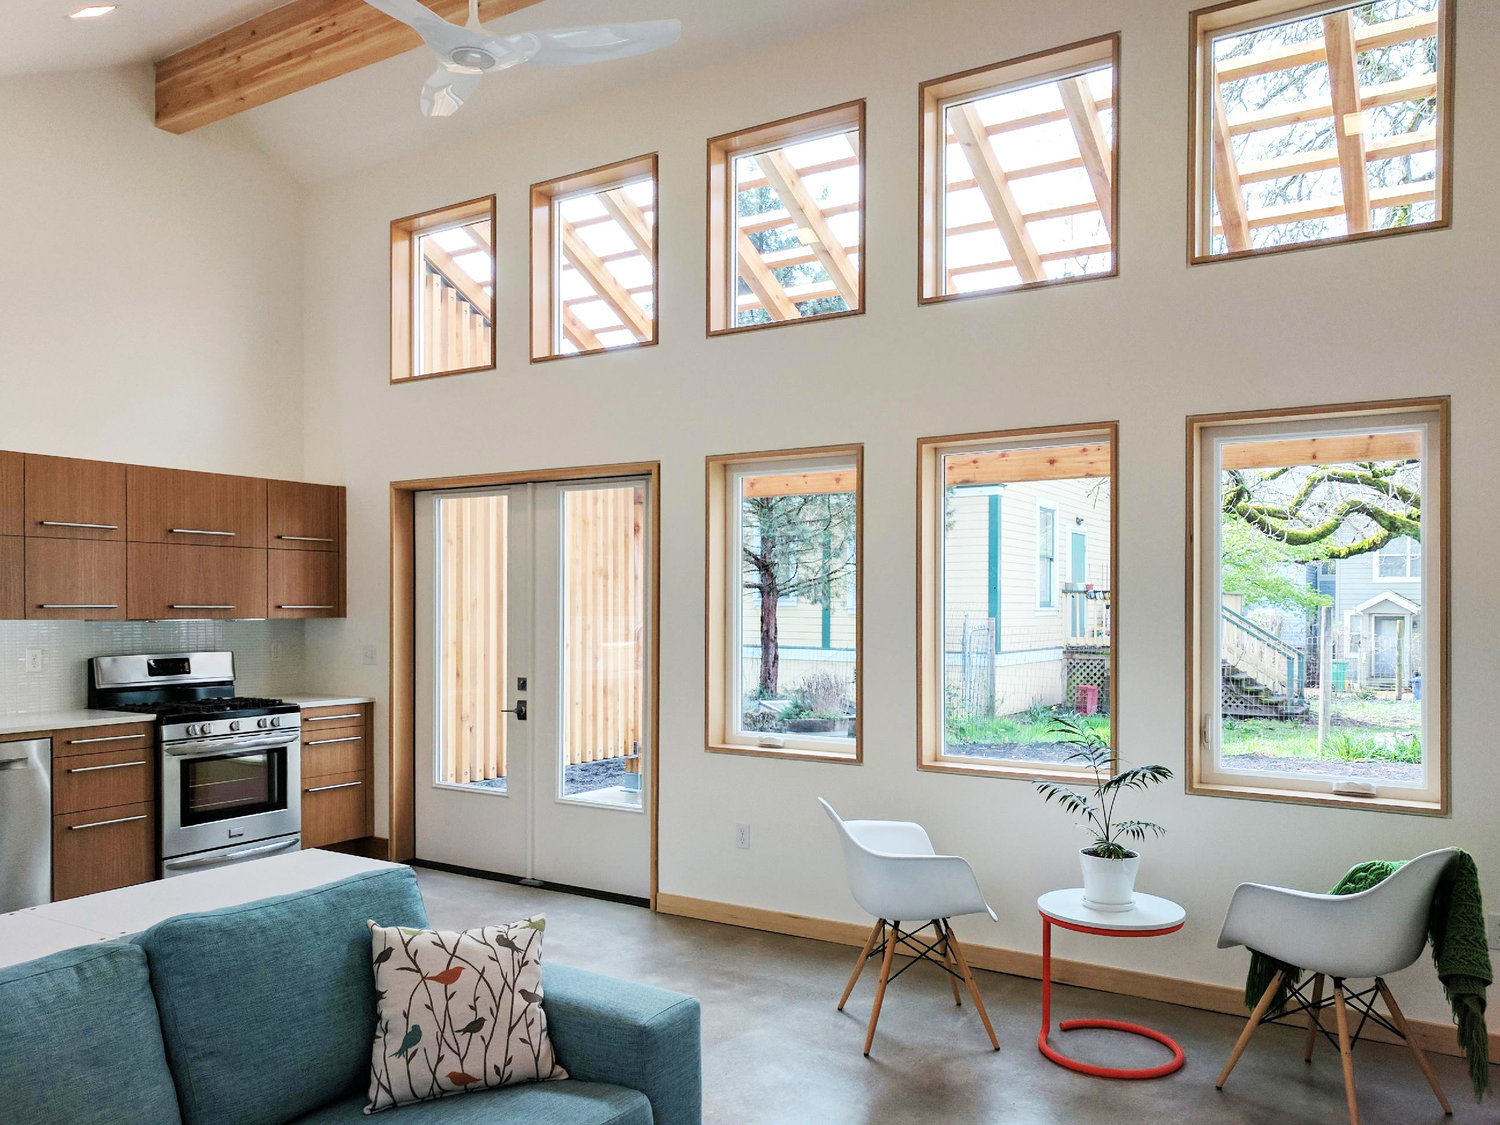 5 Tiny Tips For Designing And Building An Accessory Dwelling Unit